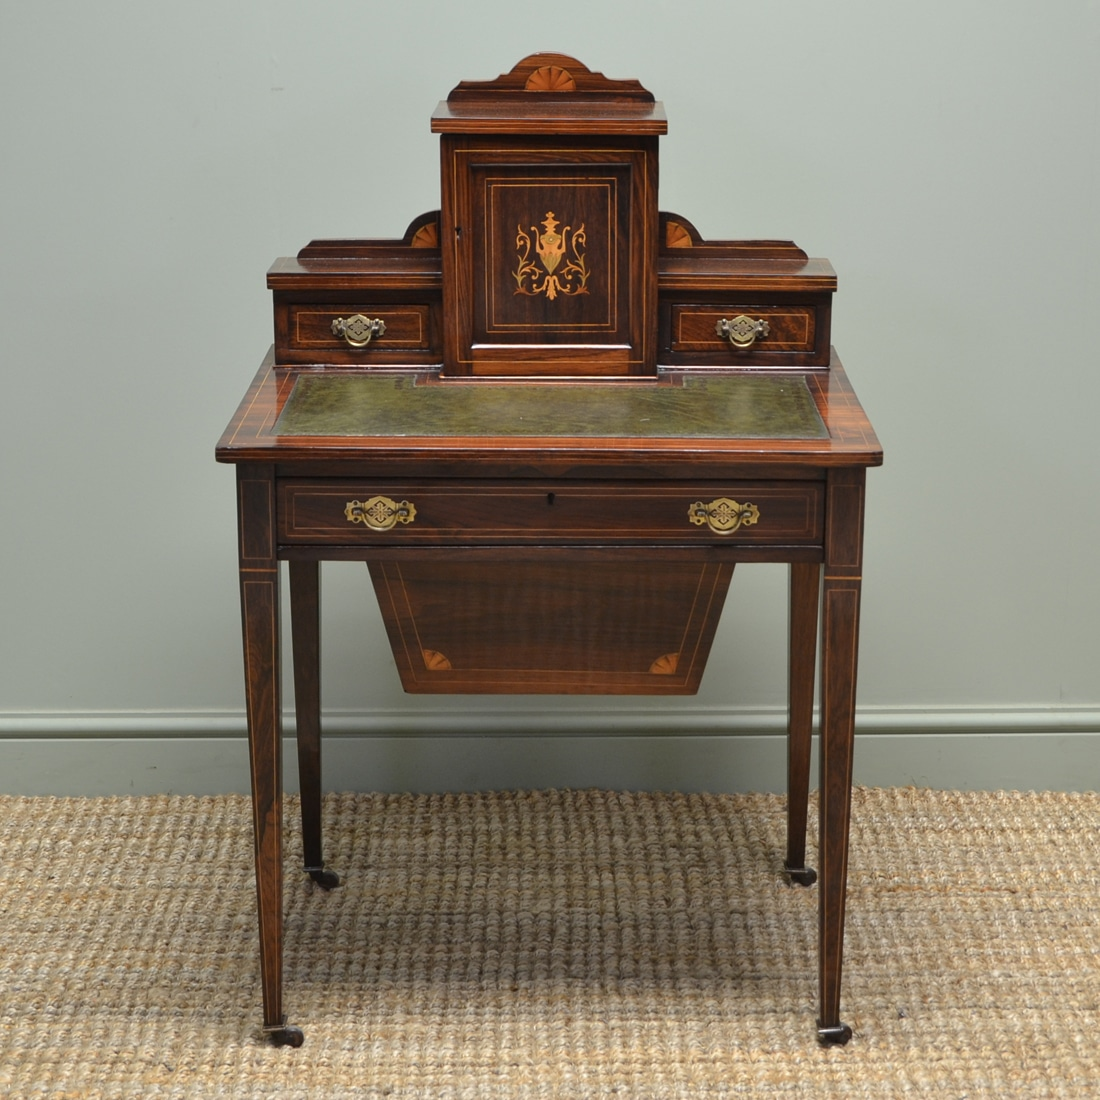 Stunning Victorian Inlaid Rosewood Ladies Writing Desk - Stunning Victorian Inlaid Rosewood Ladies Writing Desk - Antiques World